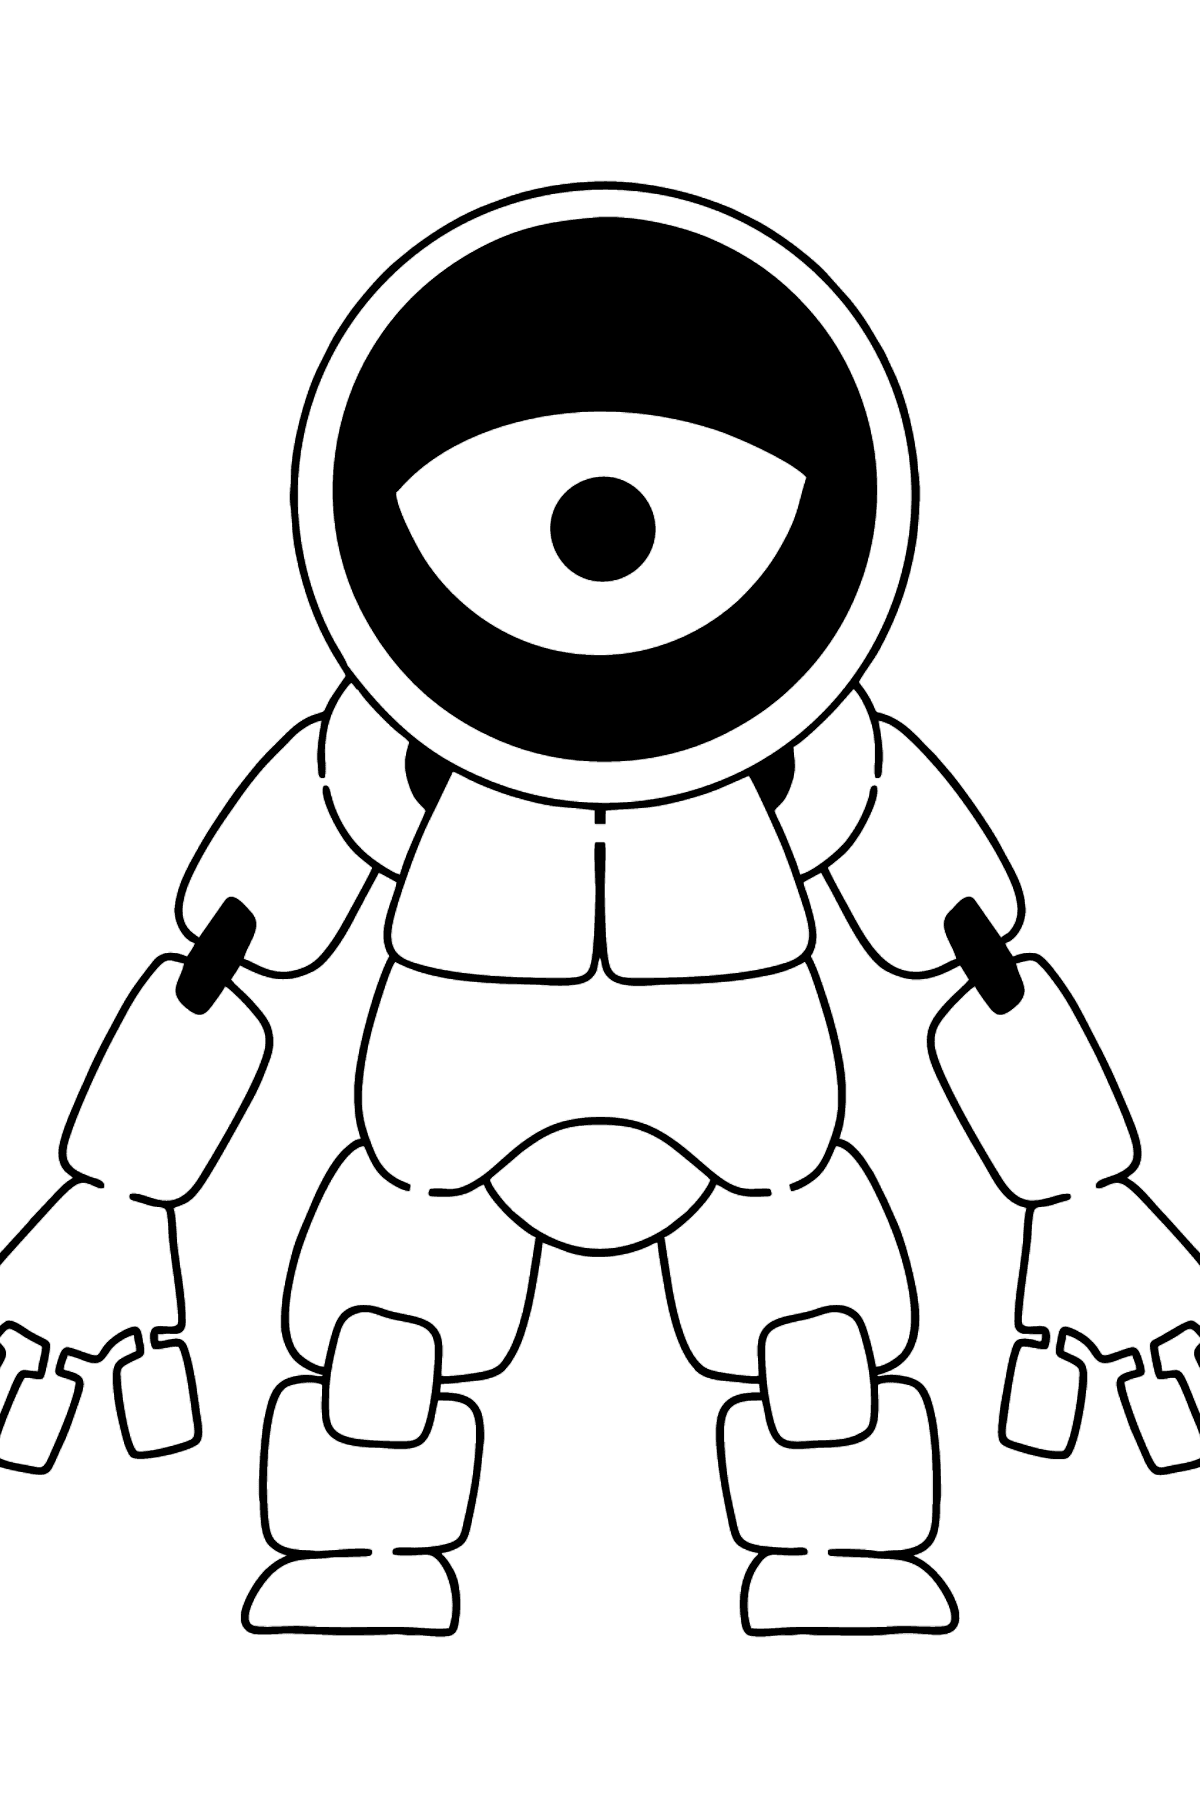 Cyclops Robot coloring page - Coloring Pages for Kids